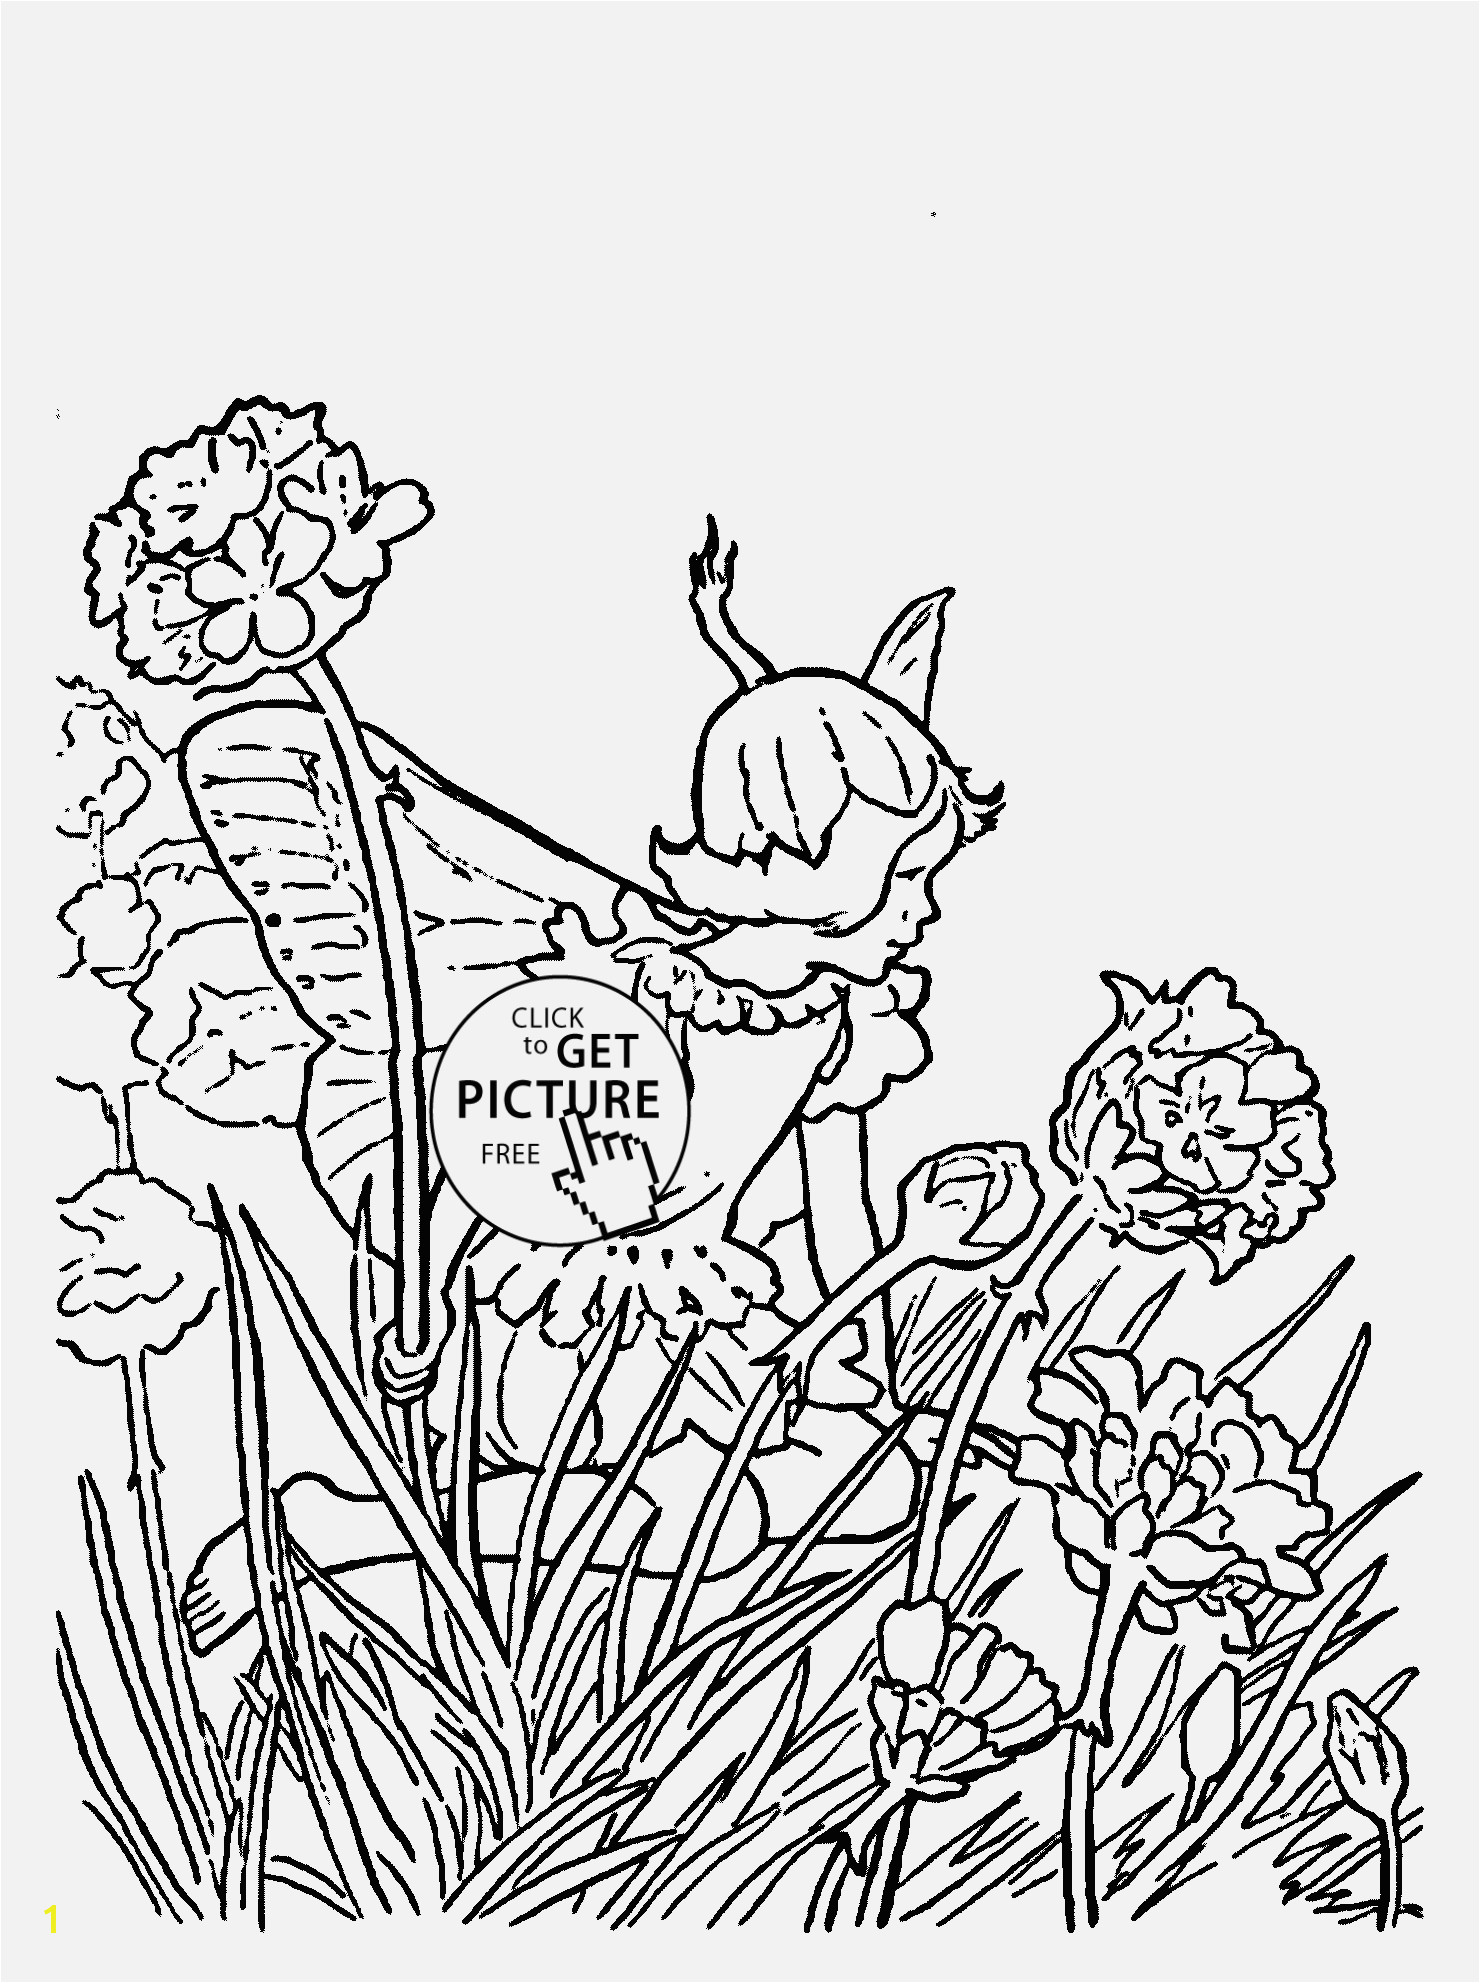 Free Coloring Pages for Girls the First Ever Custom Flower Fairy Thrift Coloring Page for Kids